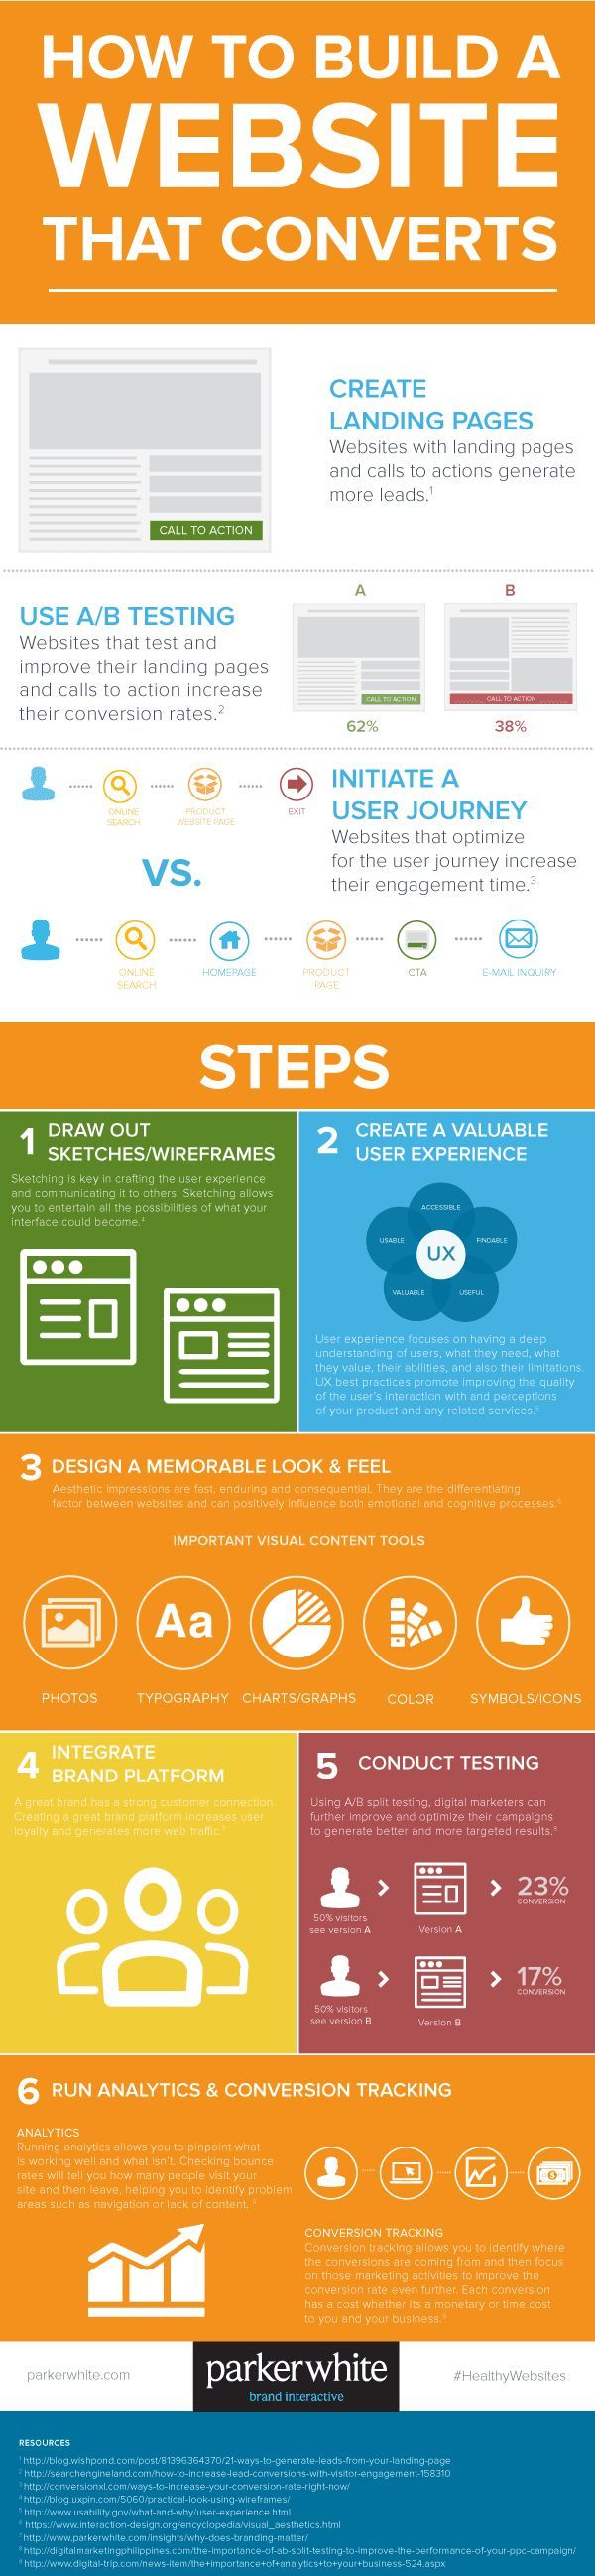 Our latest infographic: How to transform your website into a powerful lead-generating tool. #leadgeneration #digitalmarketing #infographic